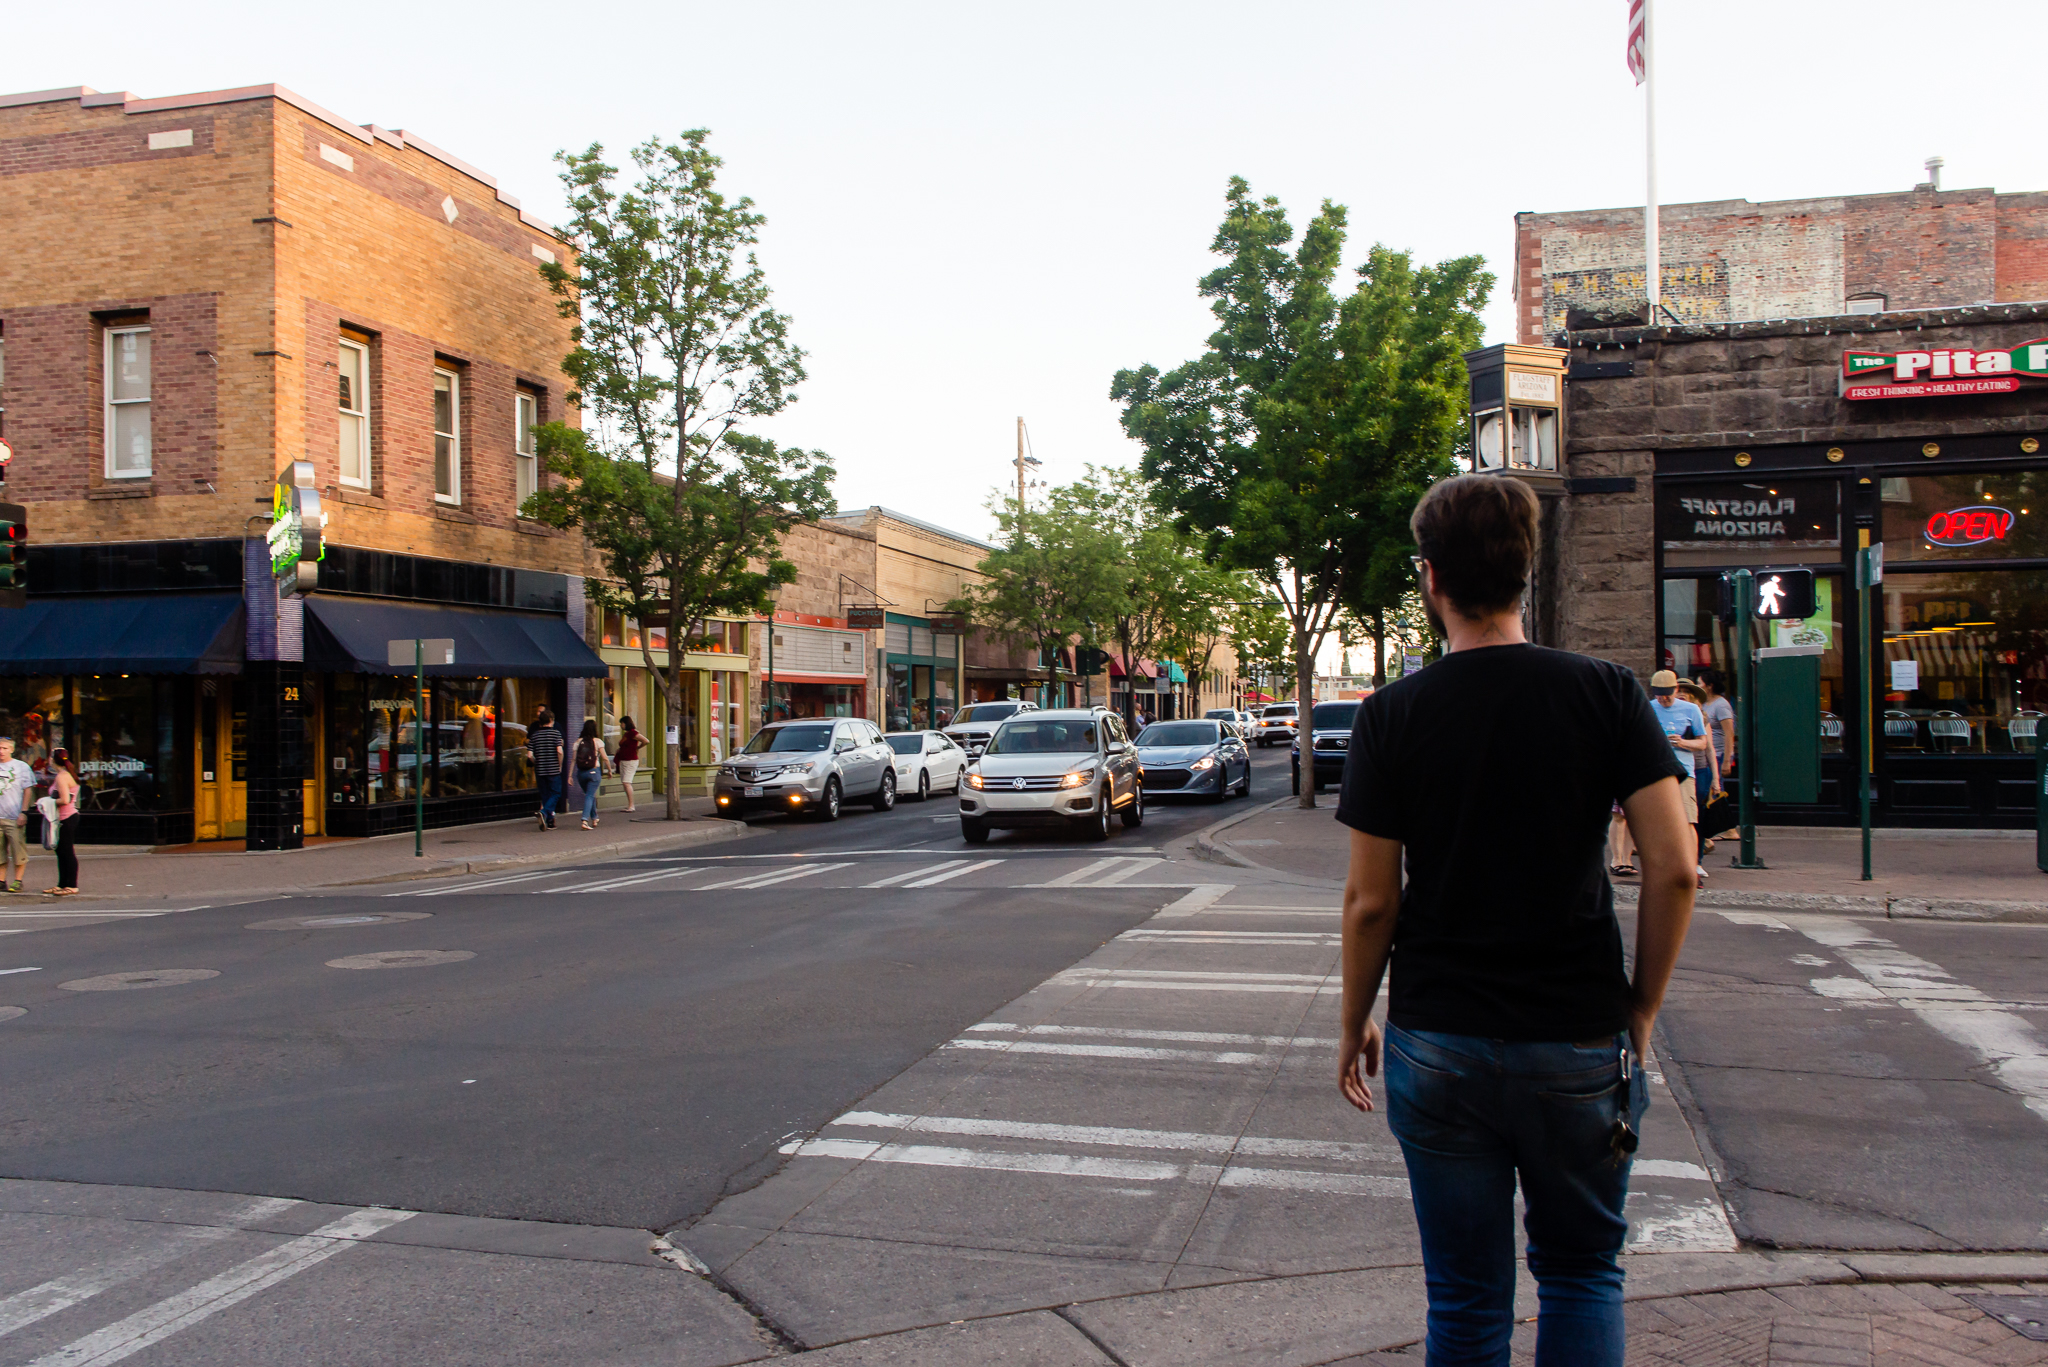 Where can we find vegan food in this town...? / 6/19/16 / Flagstaff, AZ